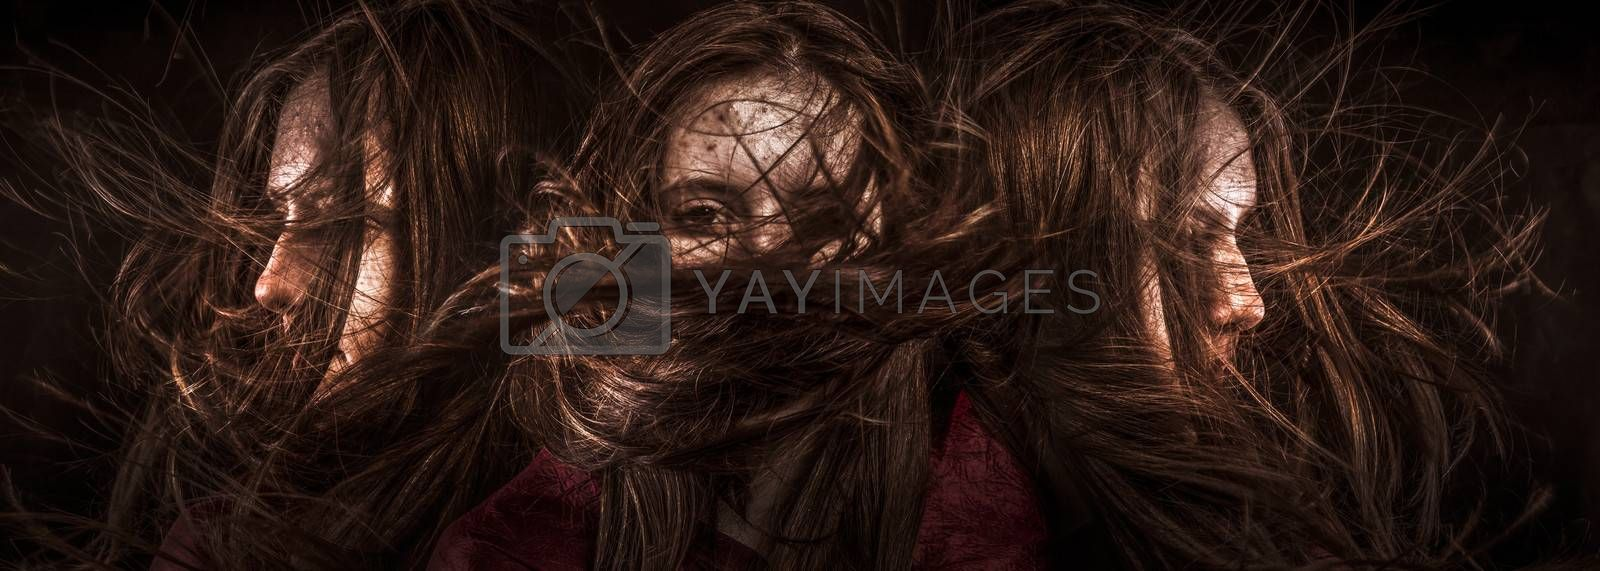 Photo of beautiful three girls with magnificent hair. Fashion photo